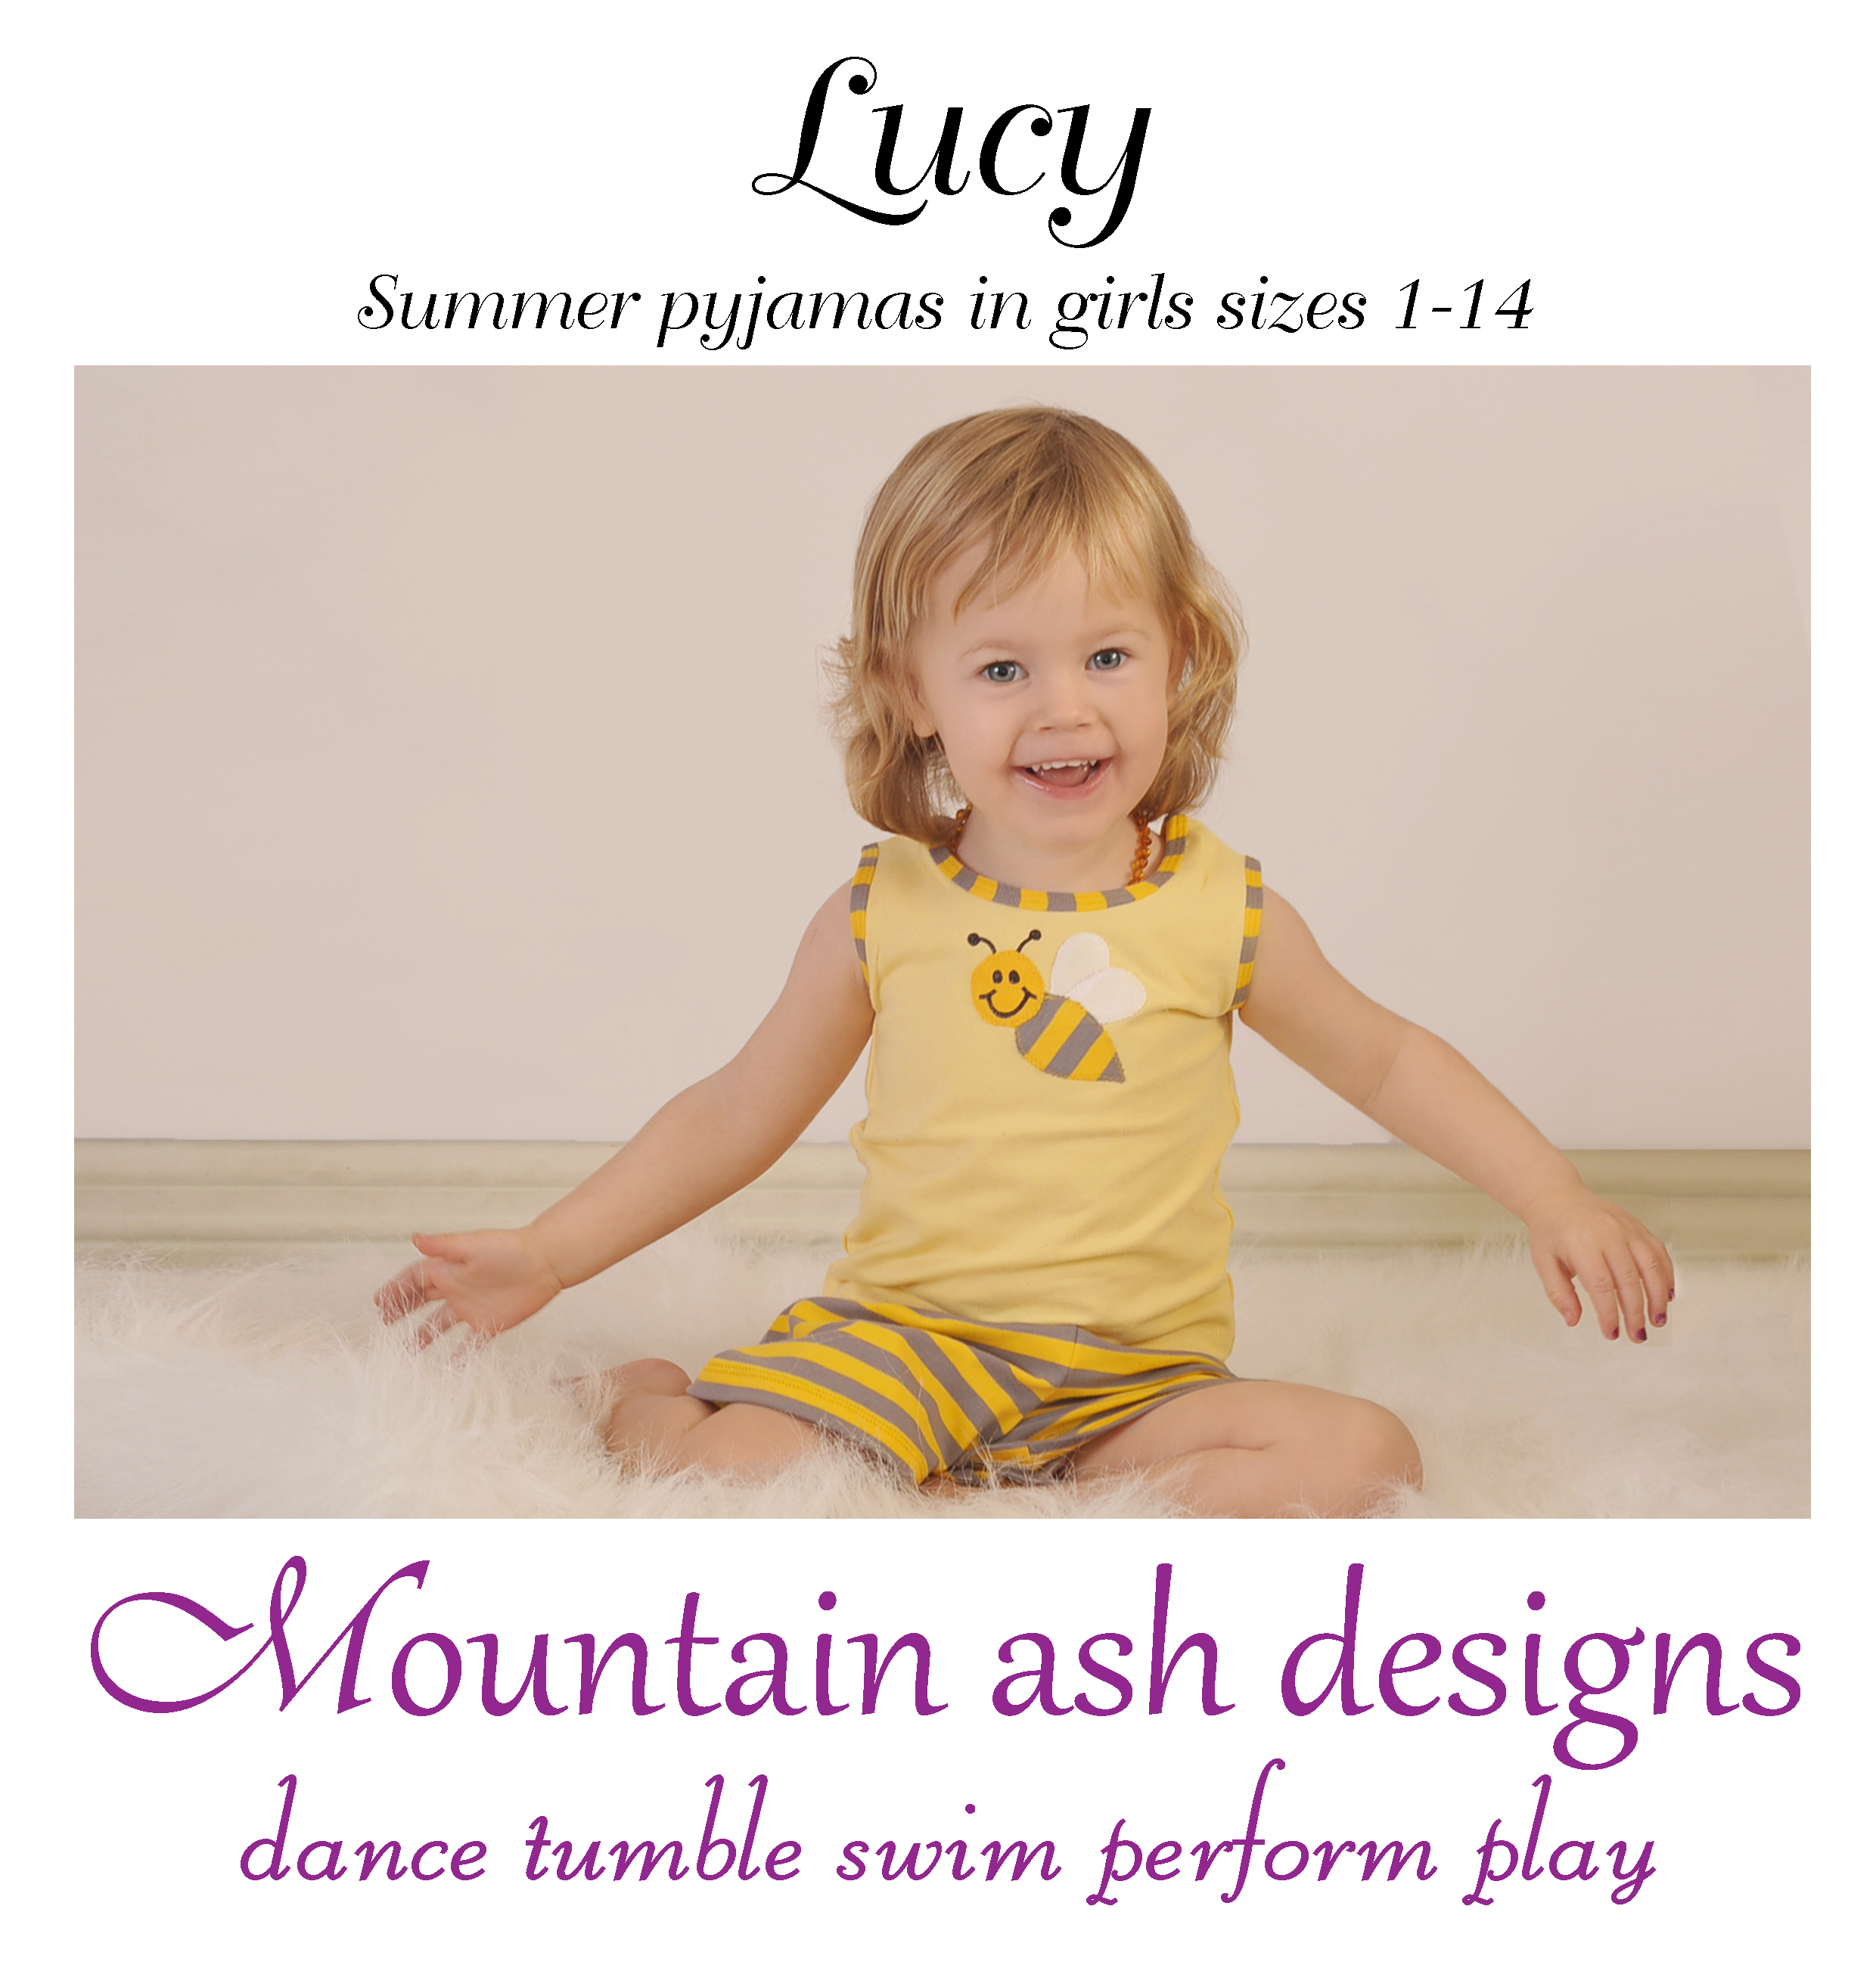 Lucy Summer Pyjamas Sewing Pattern in Girls Sizes 1-14